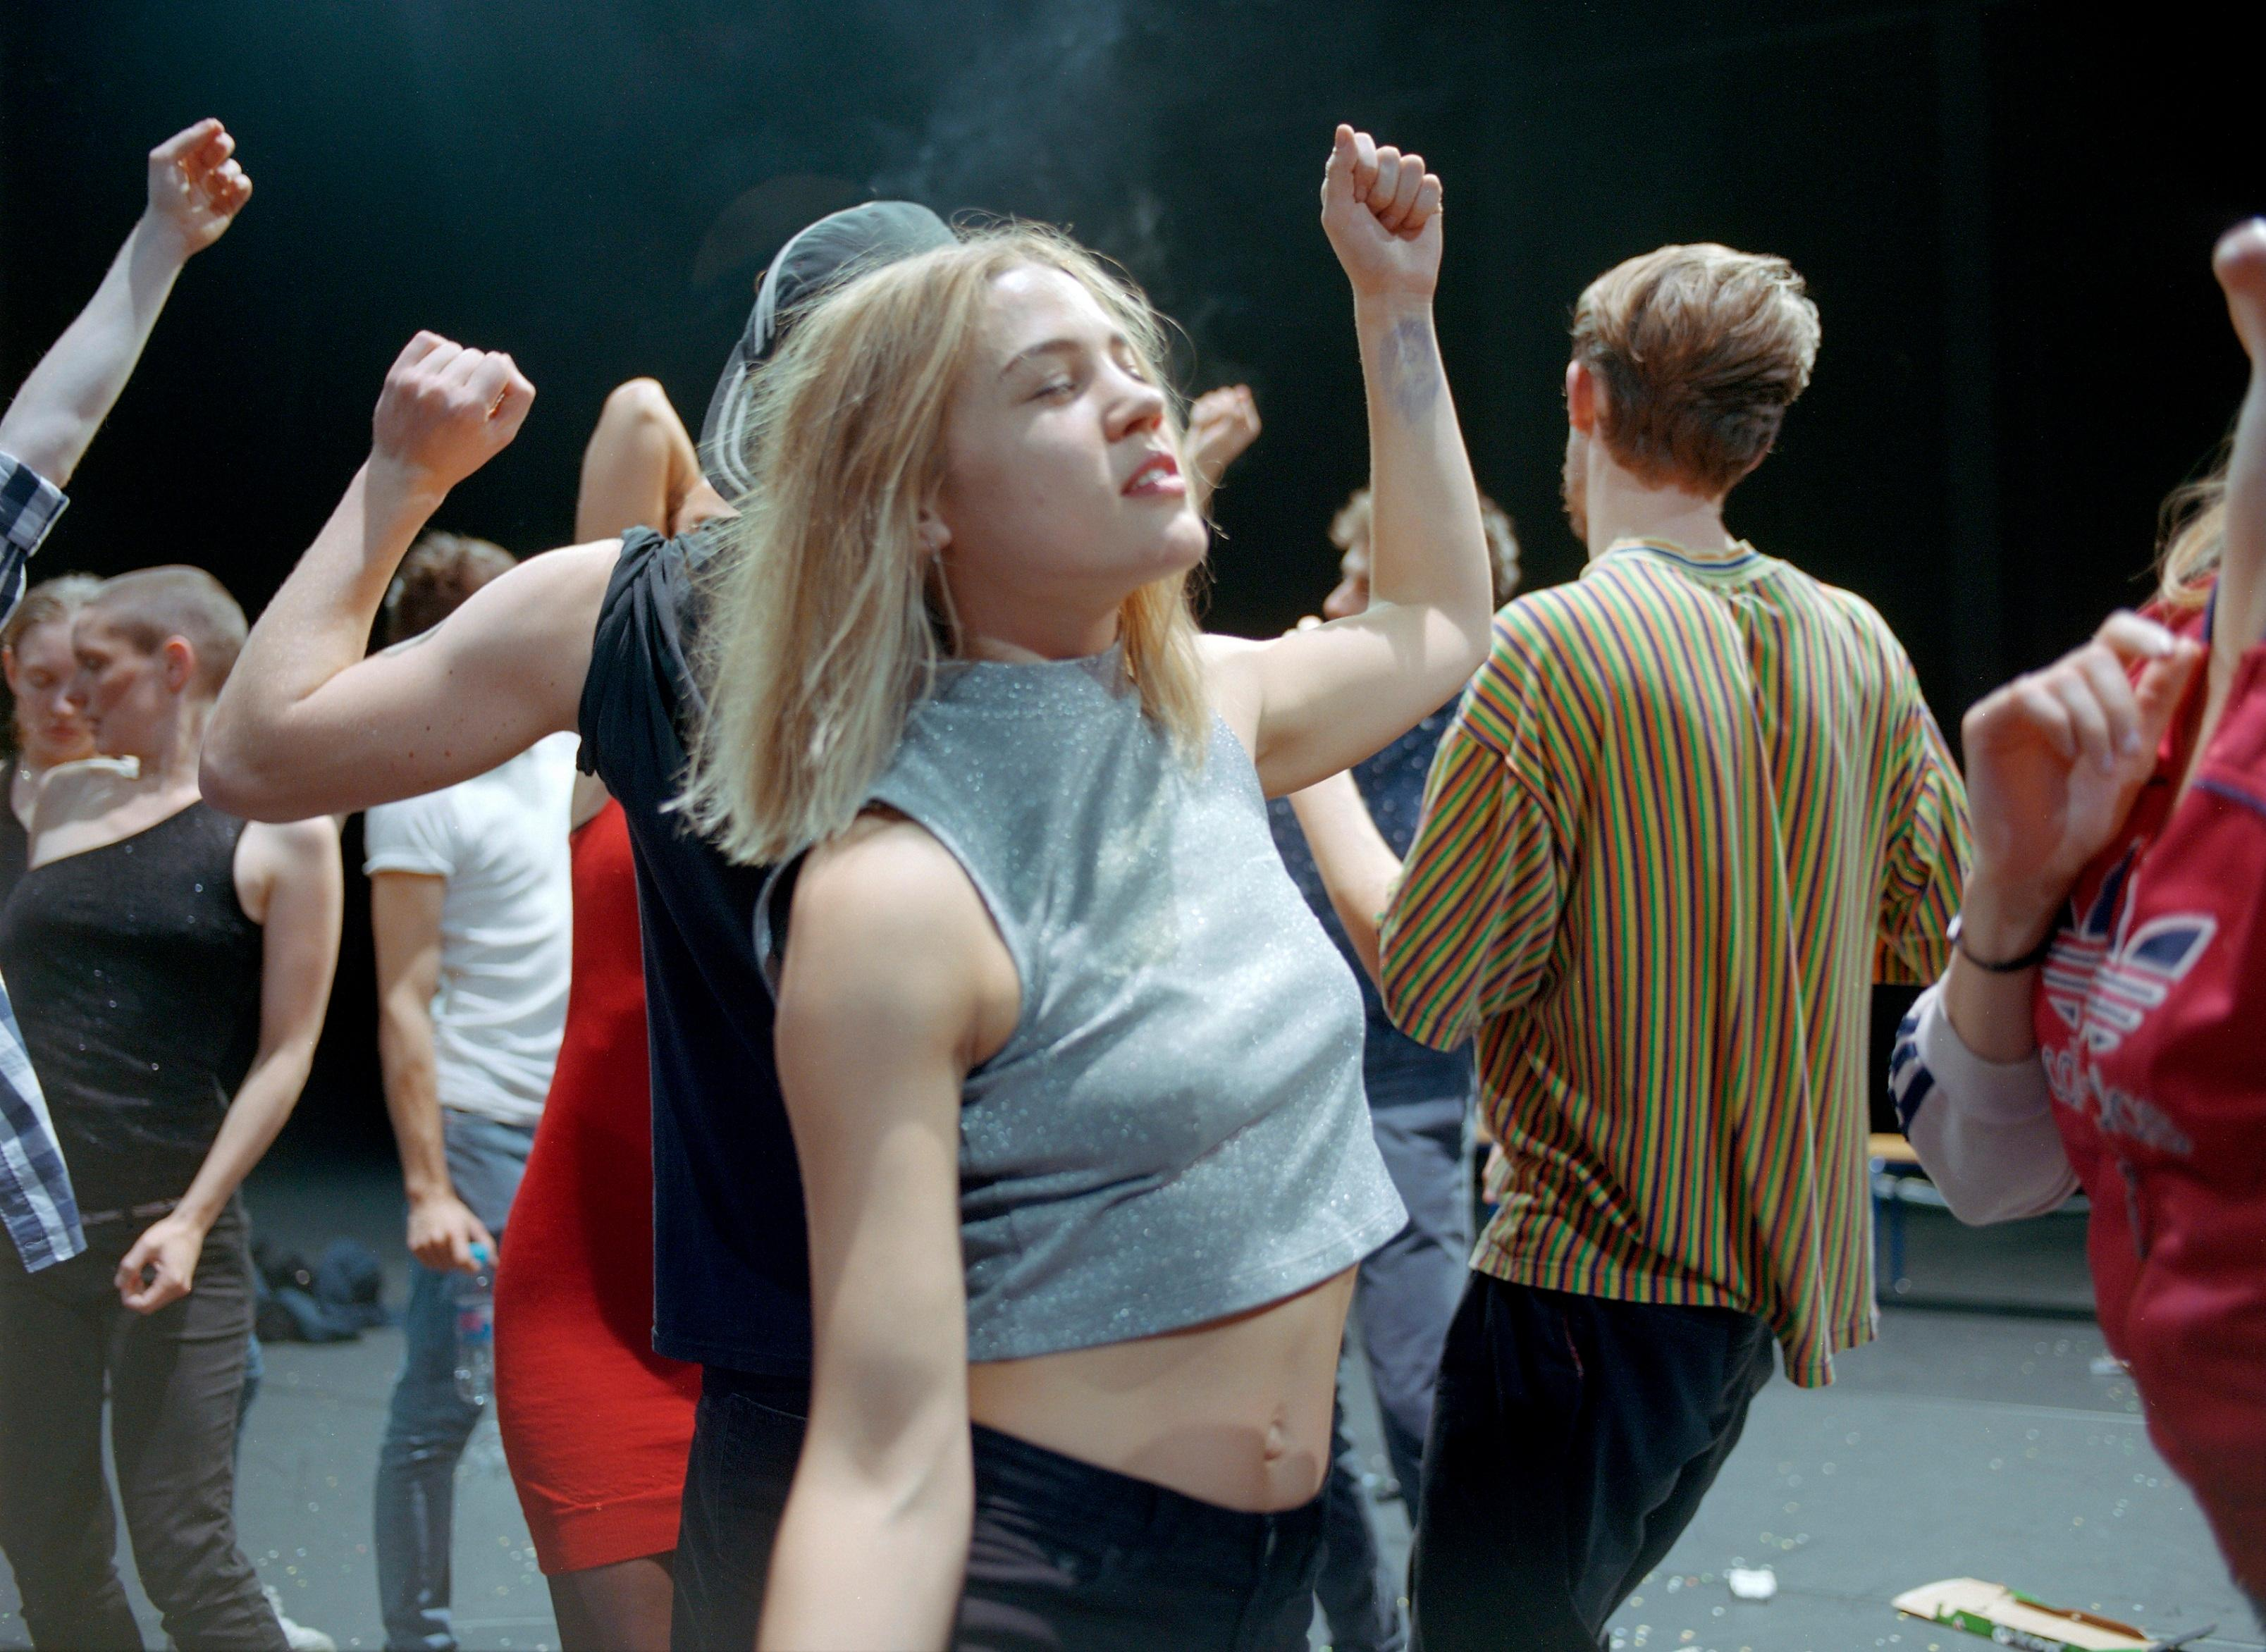 The week in dance: Gisèle Vienne: Crowd; Dada Masilo: Giselle – review